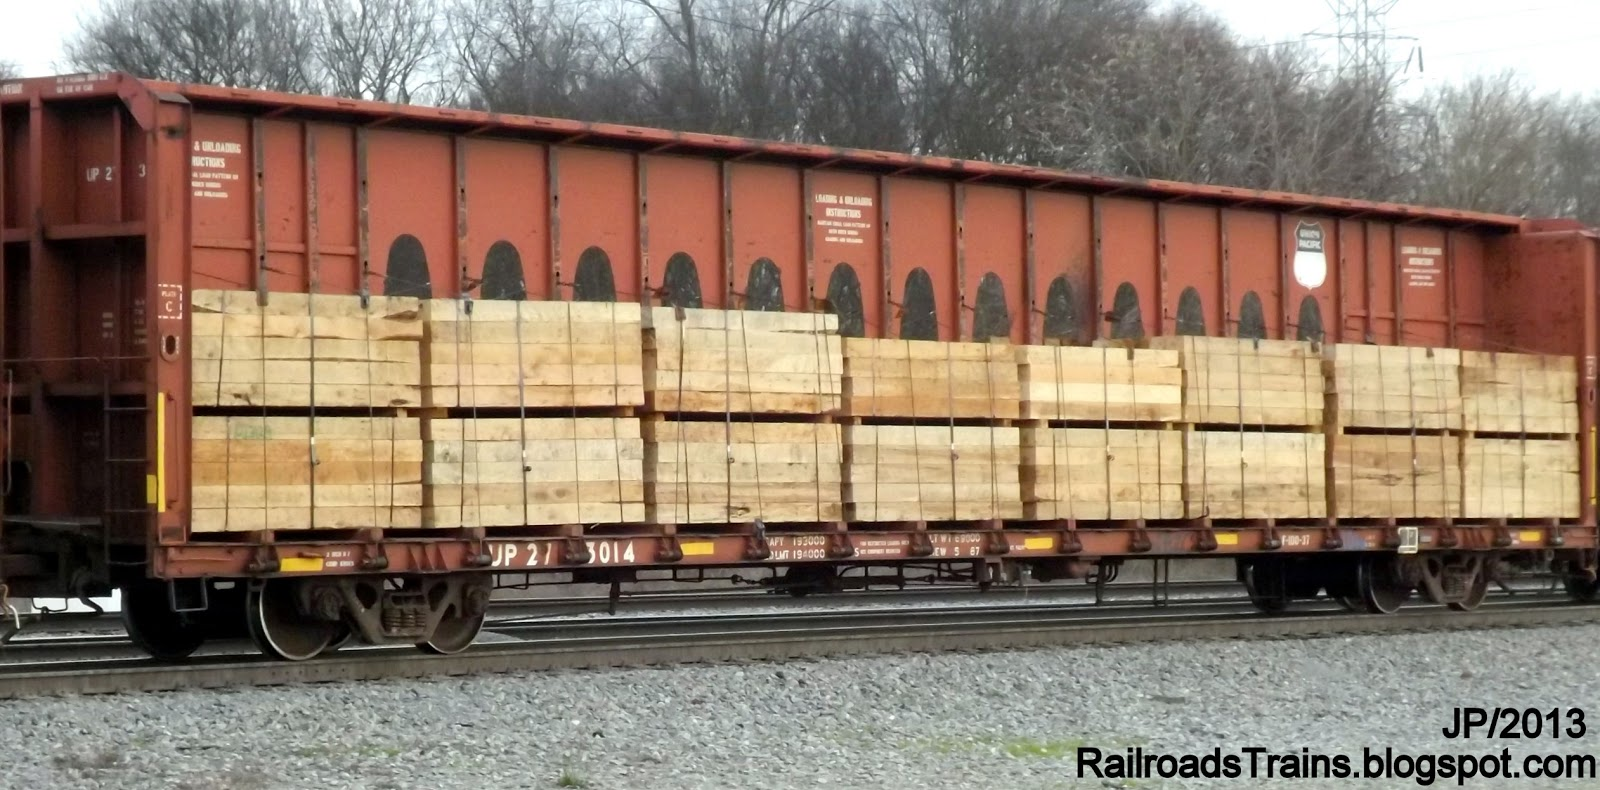 Wooden Rail Cars ~ Railroad freight train locomotive engine emd ge boxcar